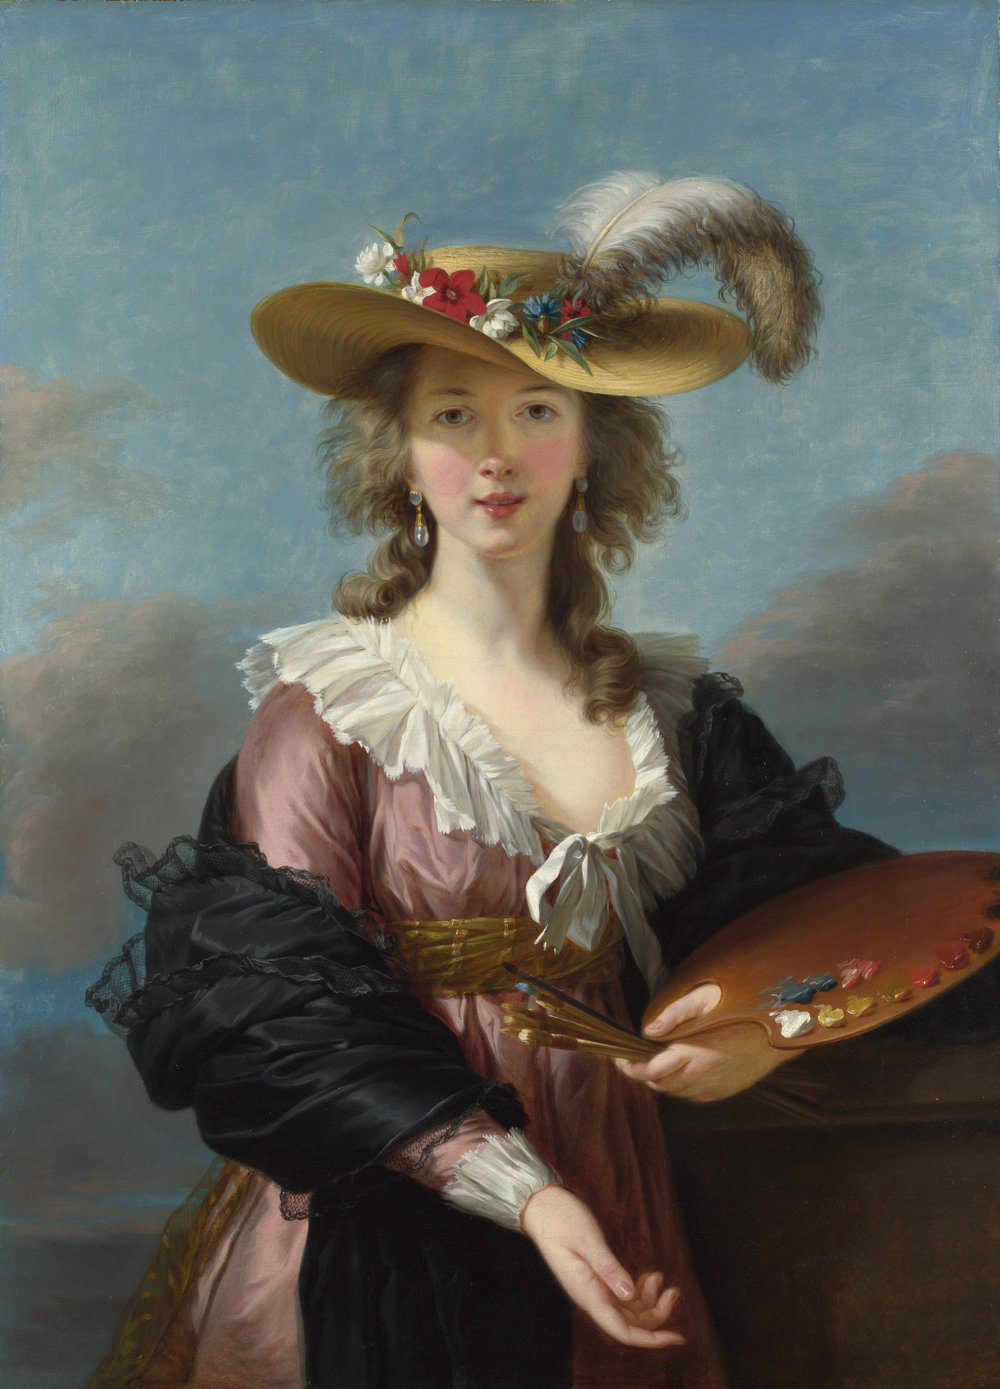 Self-portrait_in_a_Straw_Hat_by_Elisabeth-Louise_Vigée-Lebrun.jpg